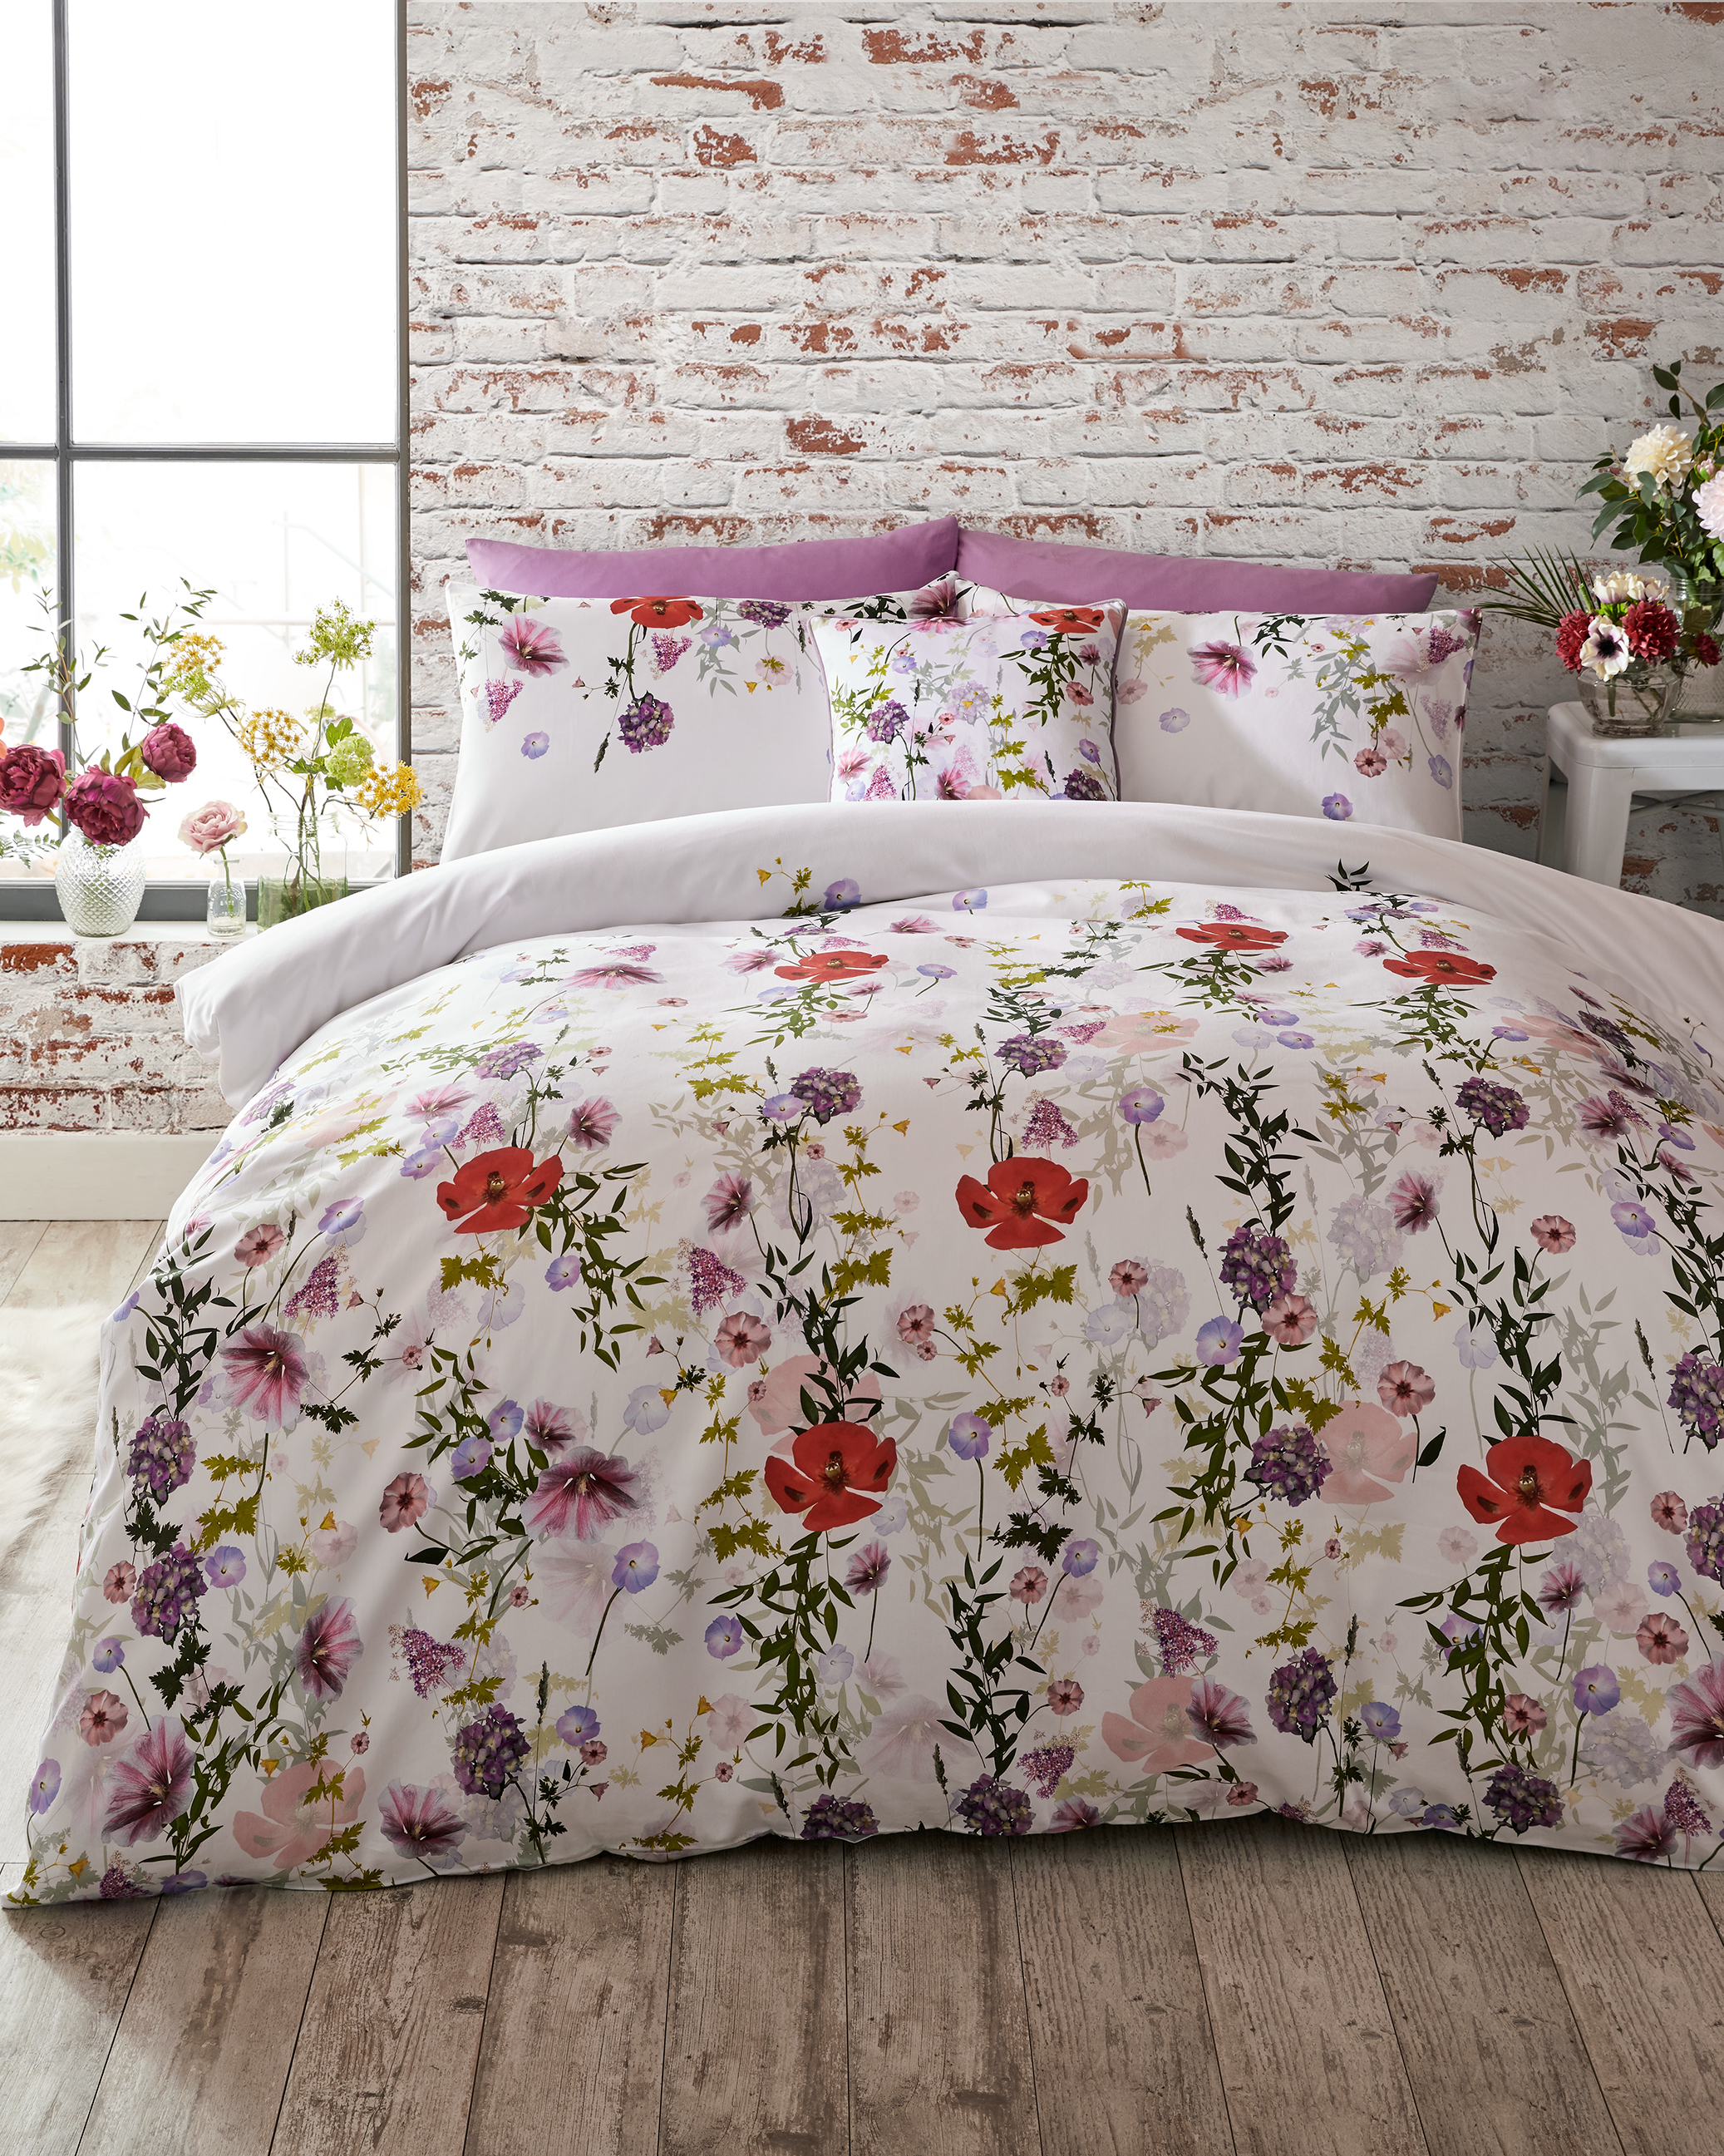 Hedgerow cotton king size duvet cover   Cream   Bed Linen   Ted